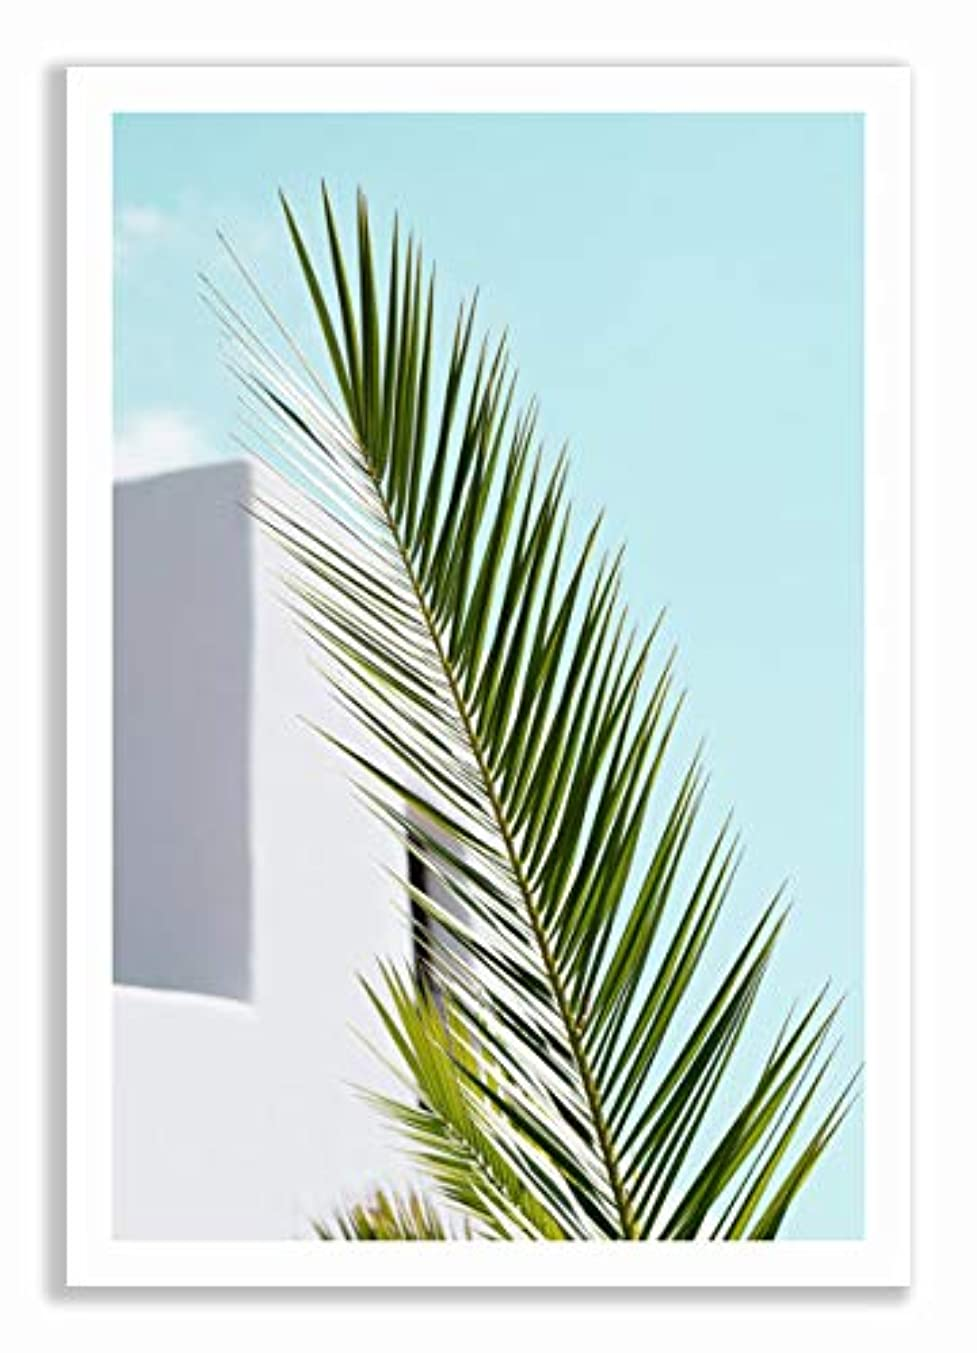 Palm Leaf and Blue Sky, White Lacquered Wood Frame, with Mount, Multicolored, 30x40